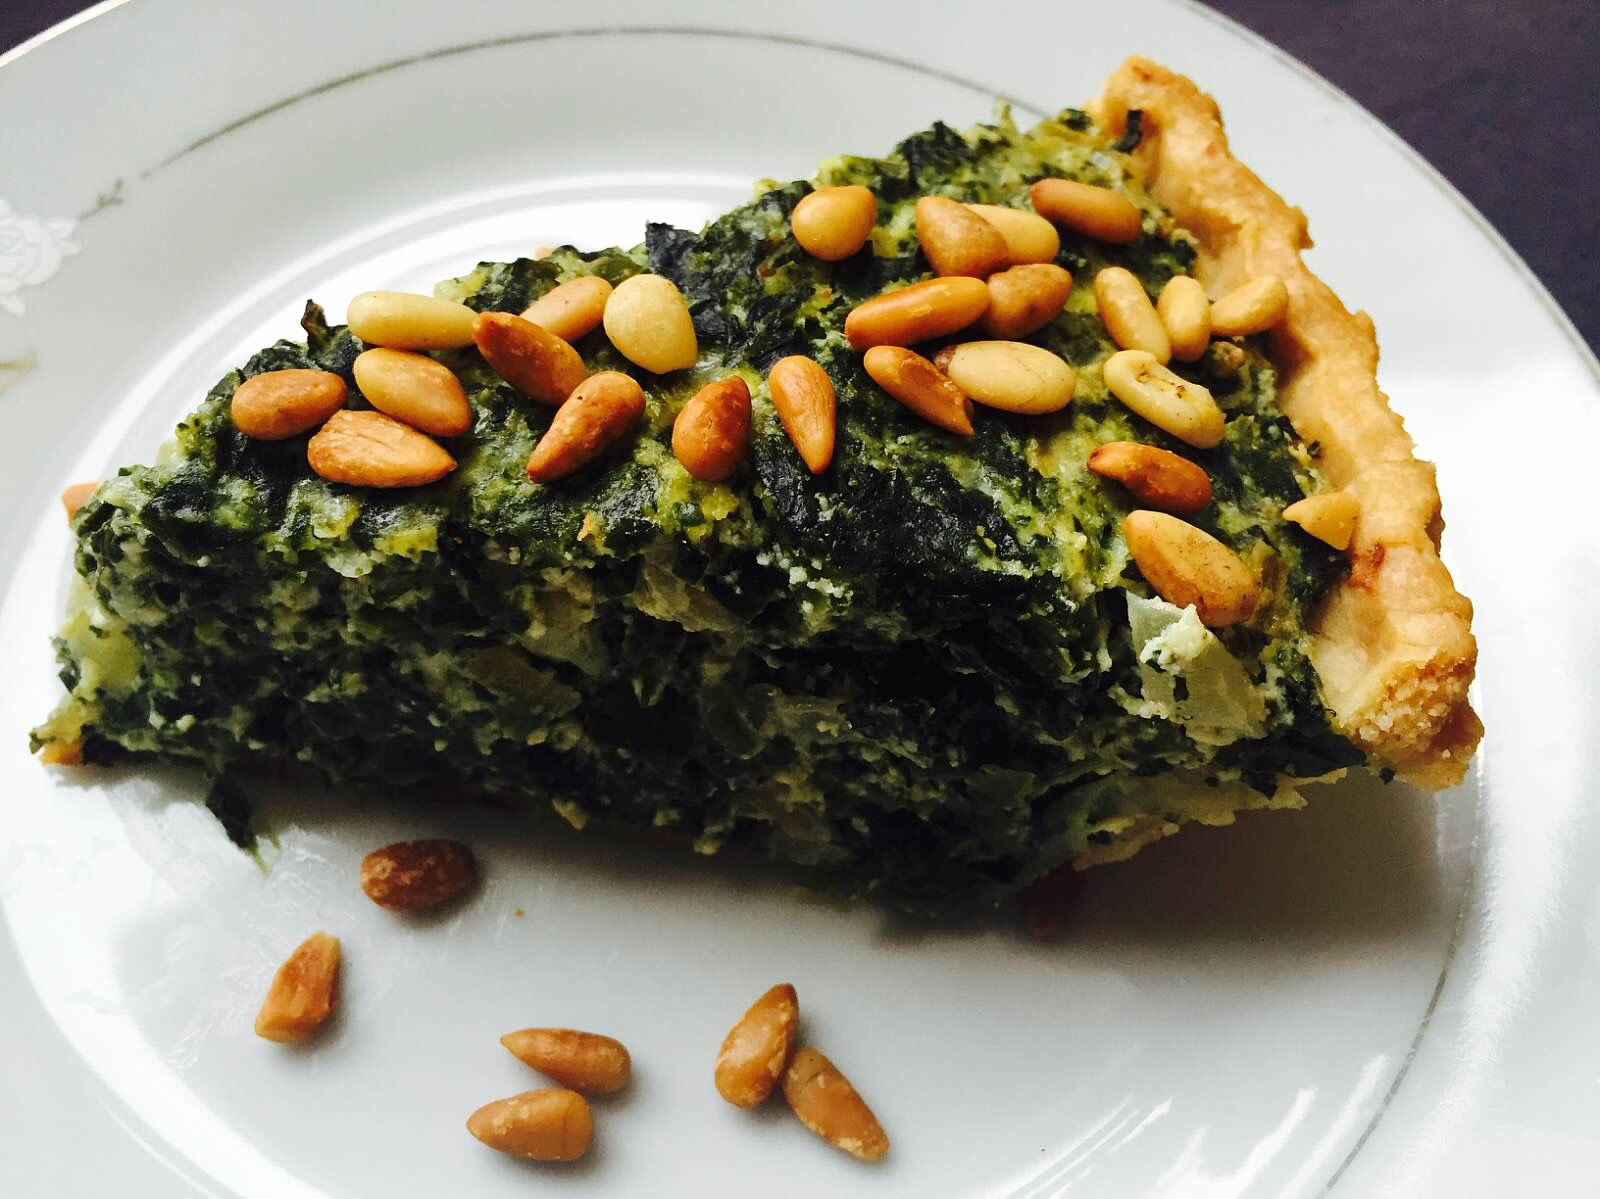 Florentine Pie with Pine Nuts from Alexandersmom.com